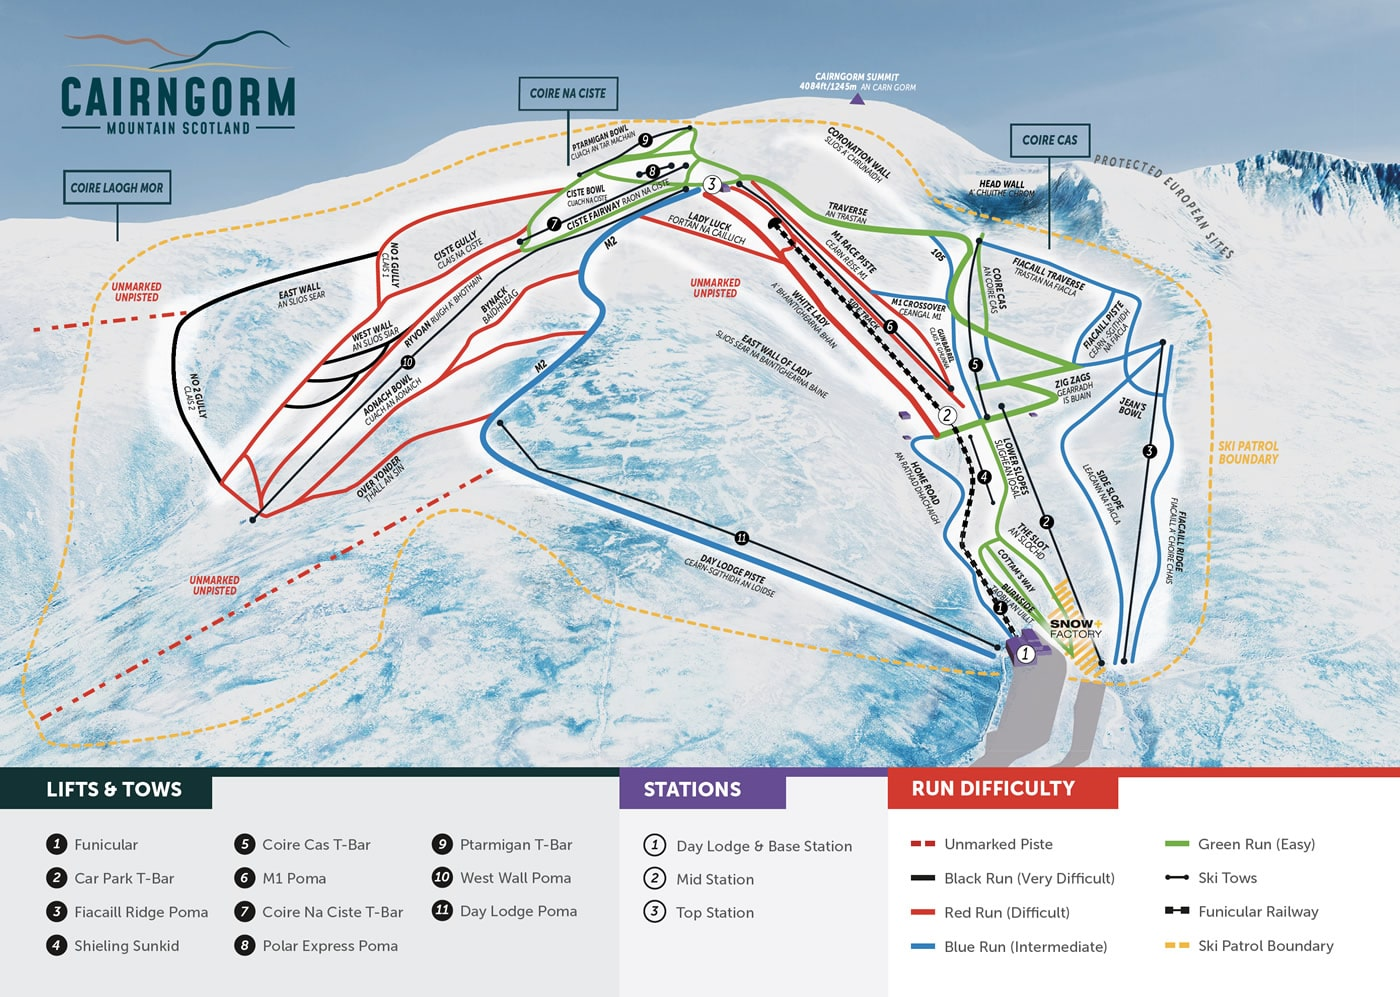 Cairngorm Piste / Trail Map